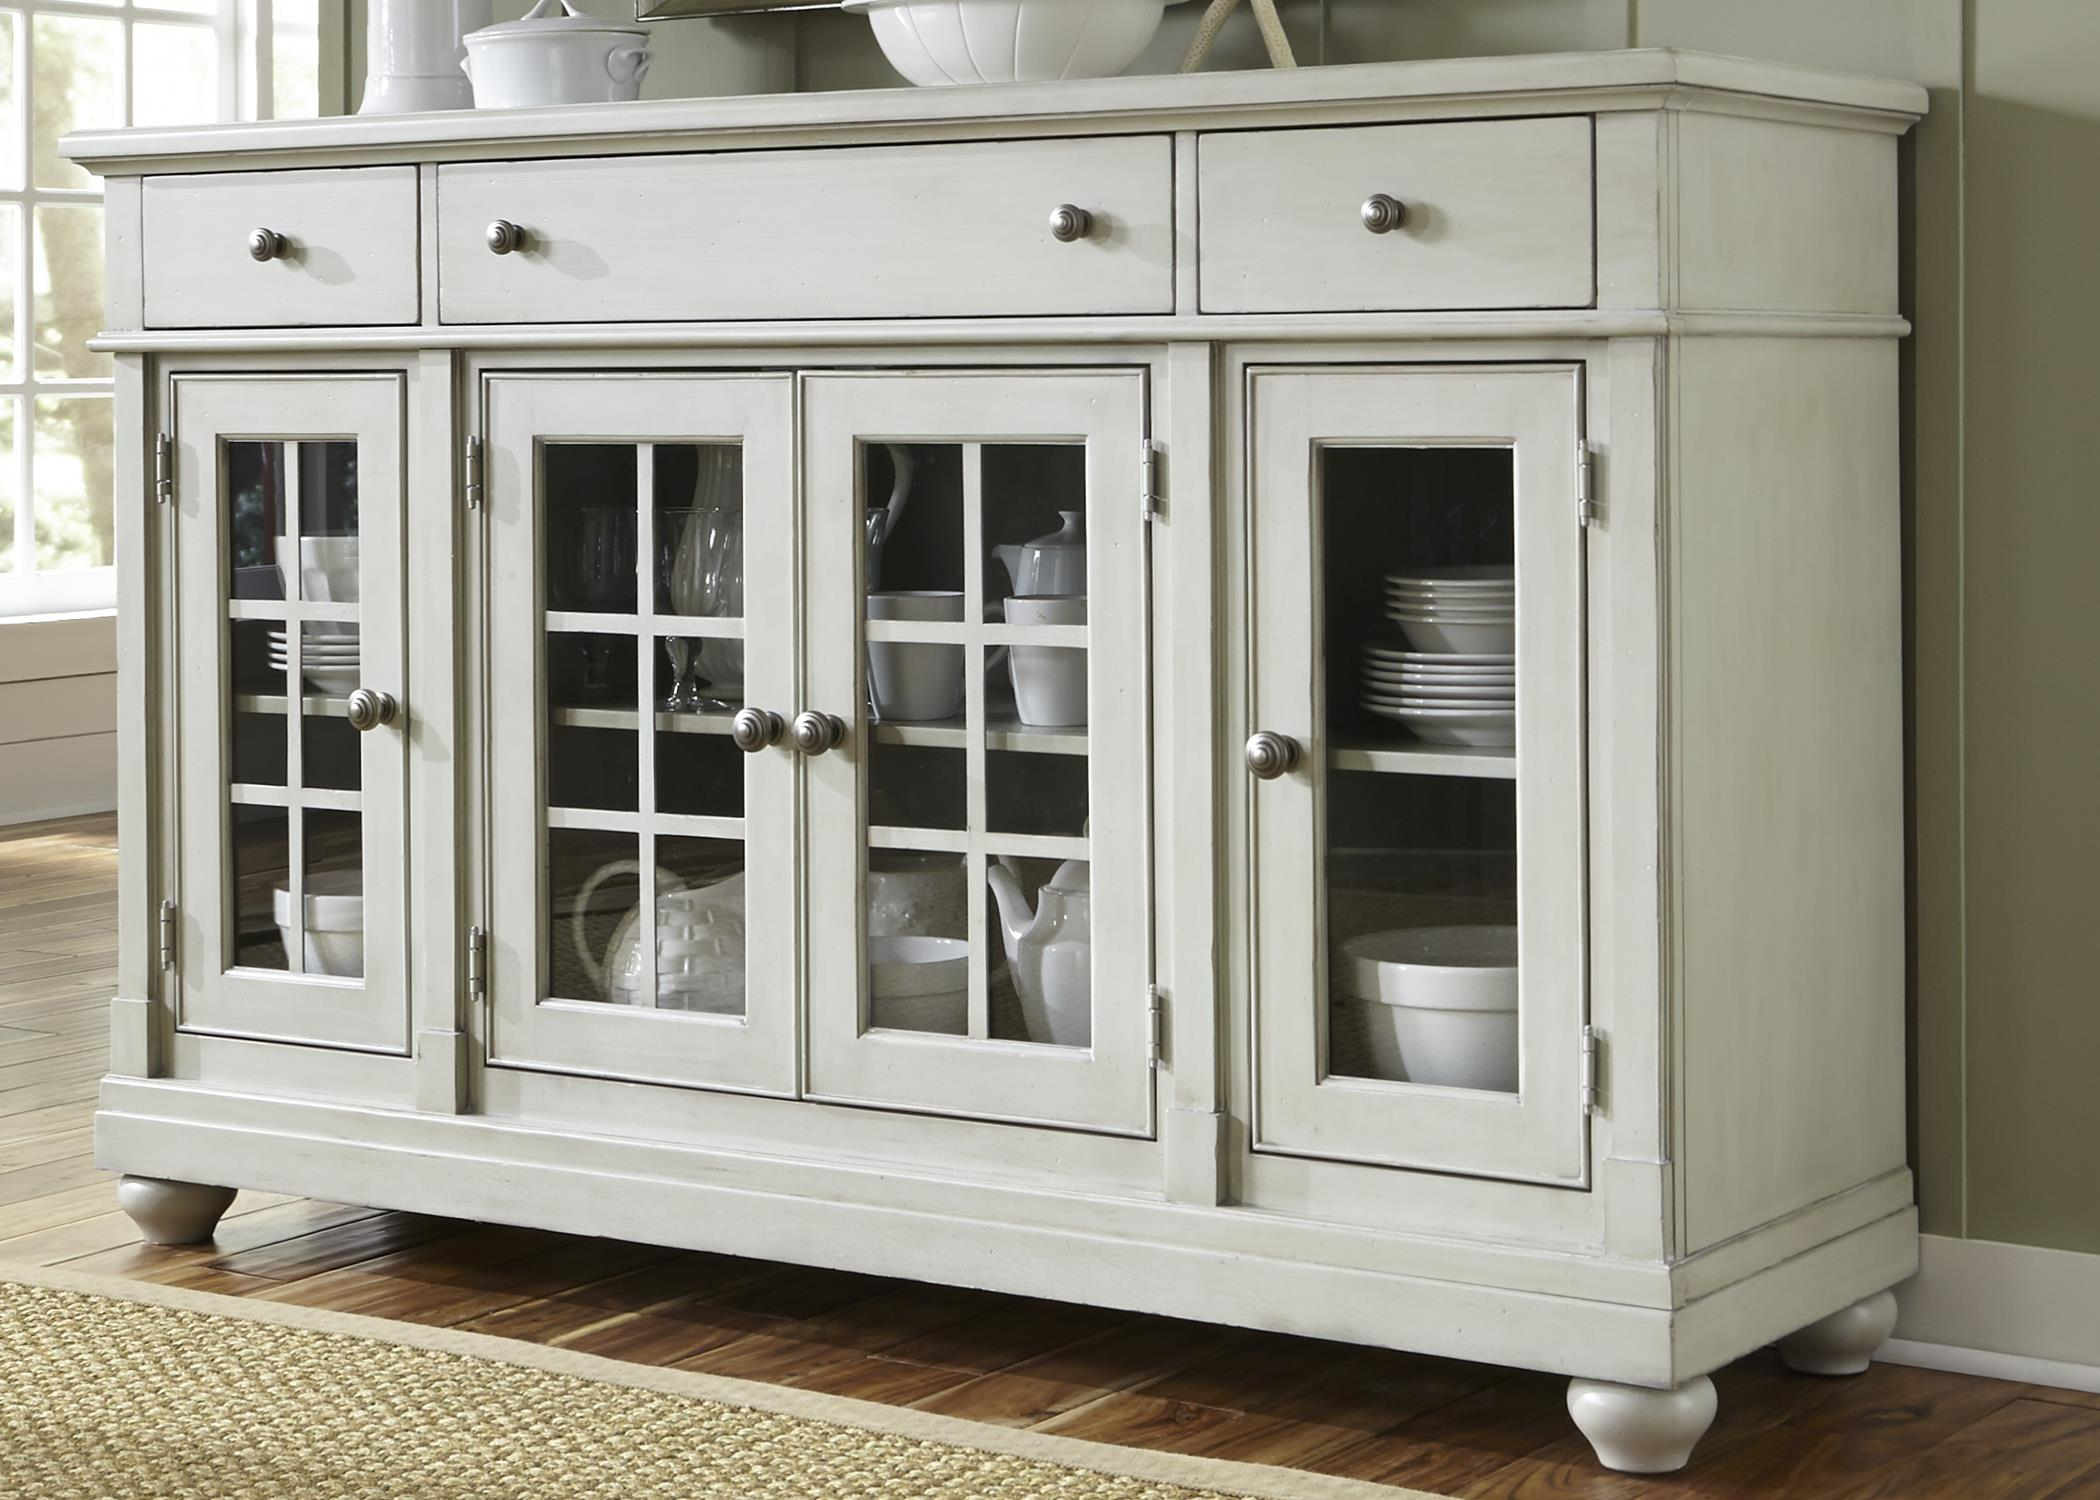 Wayfair Furniture Kitchen Sets